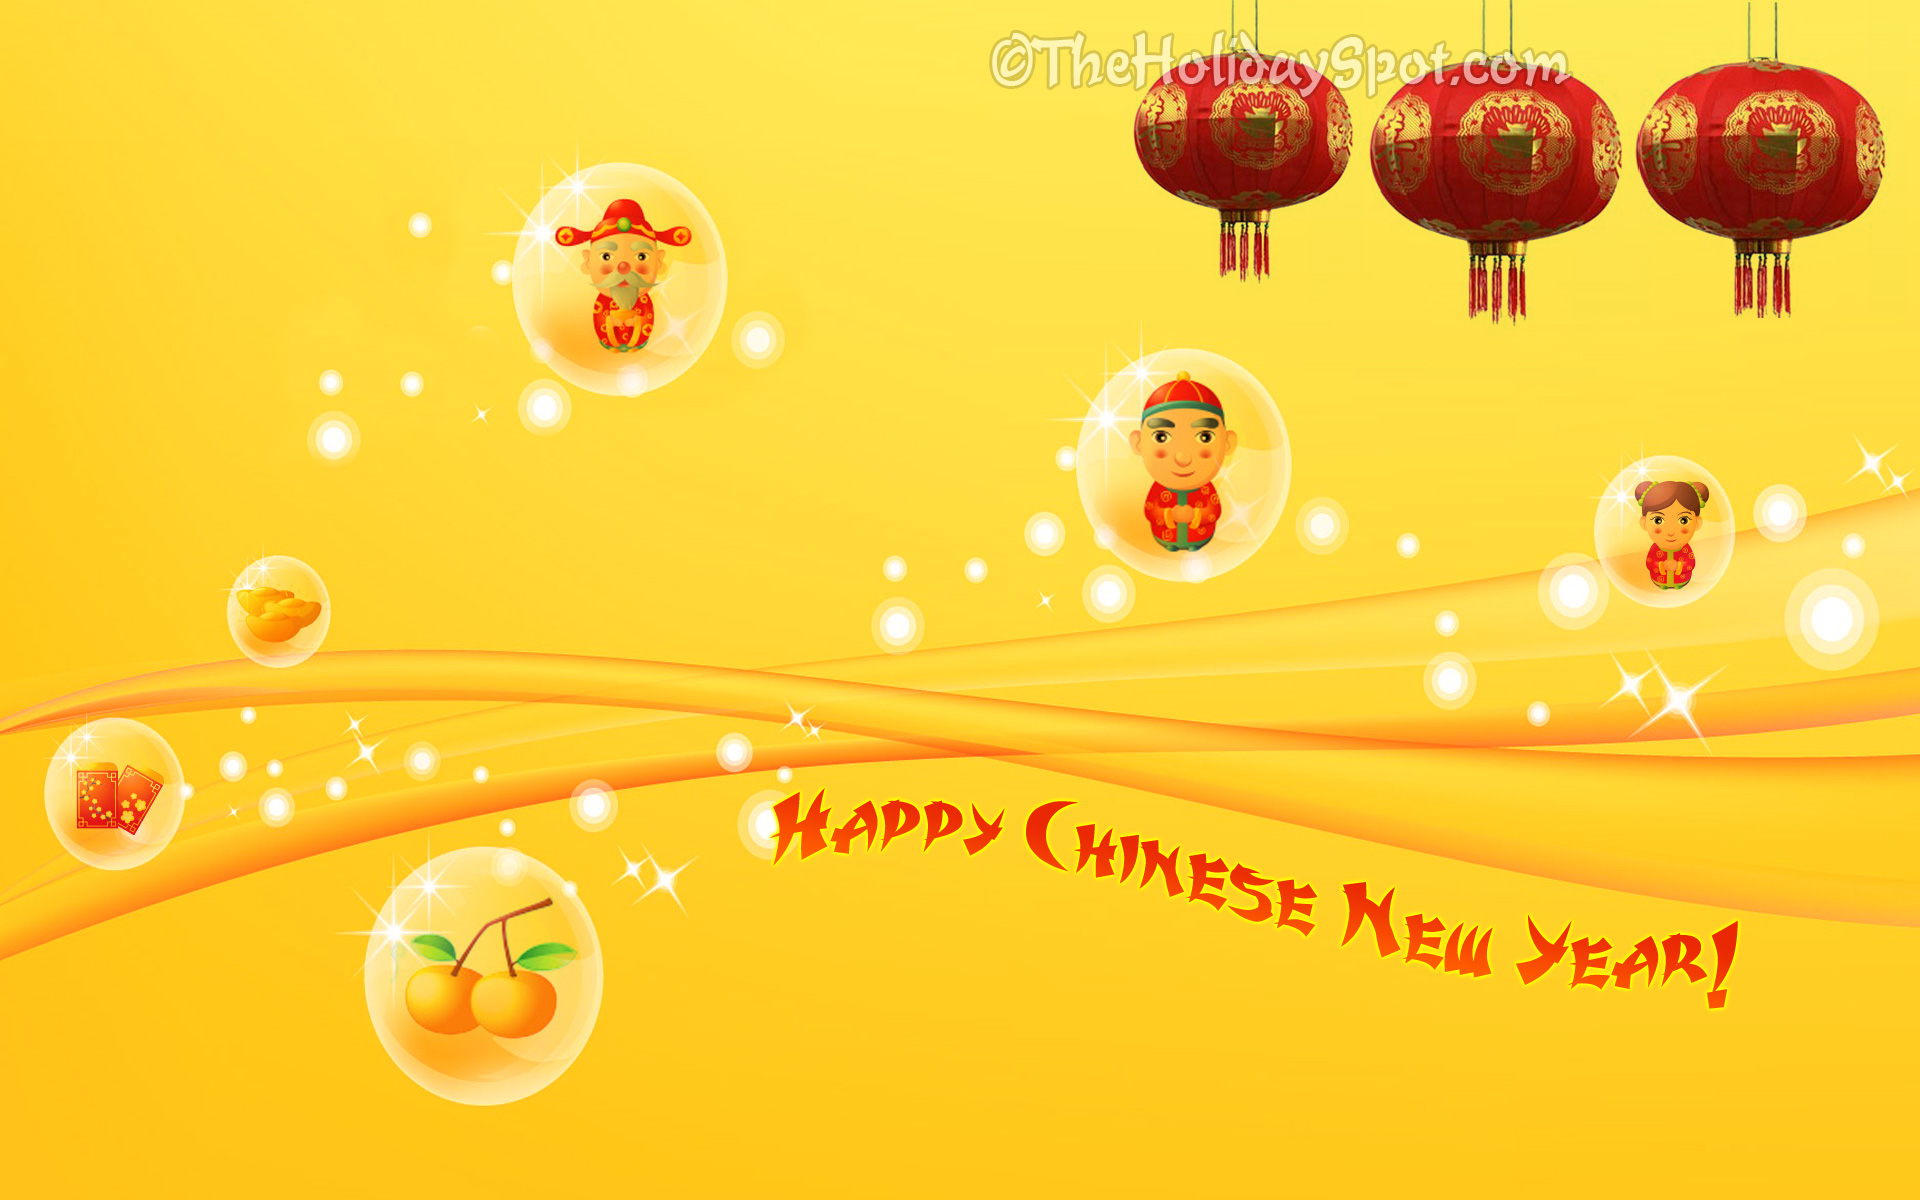 Chinese New Year Wallpaper 2016 - WallpaperSafari